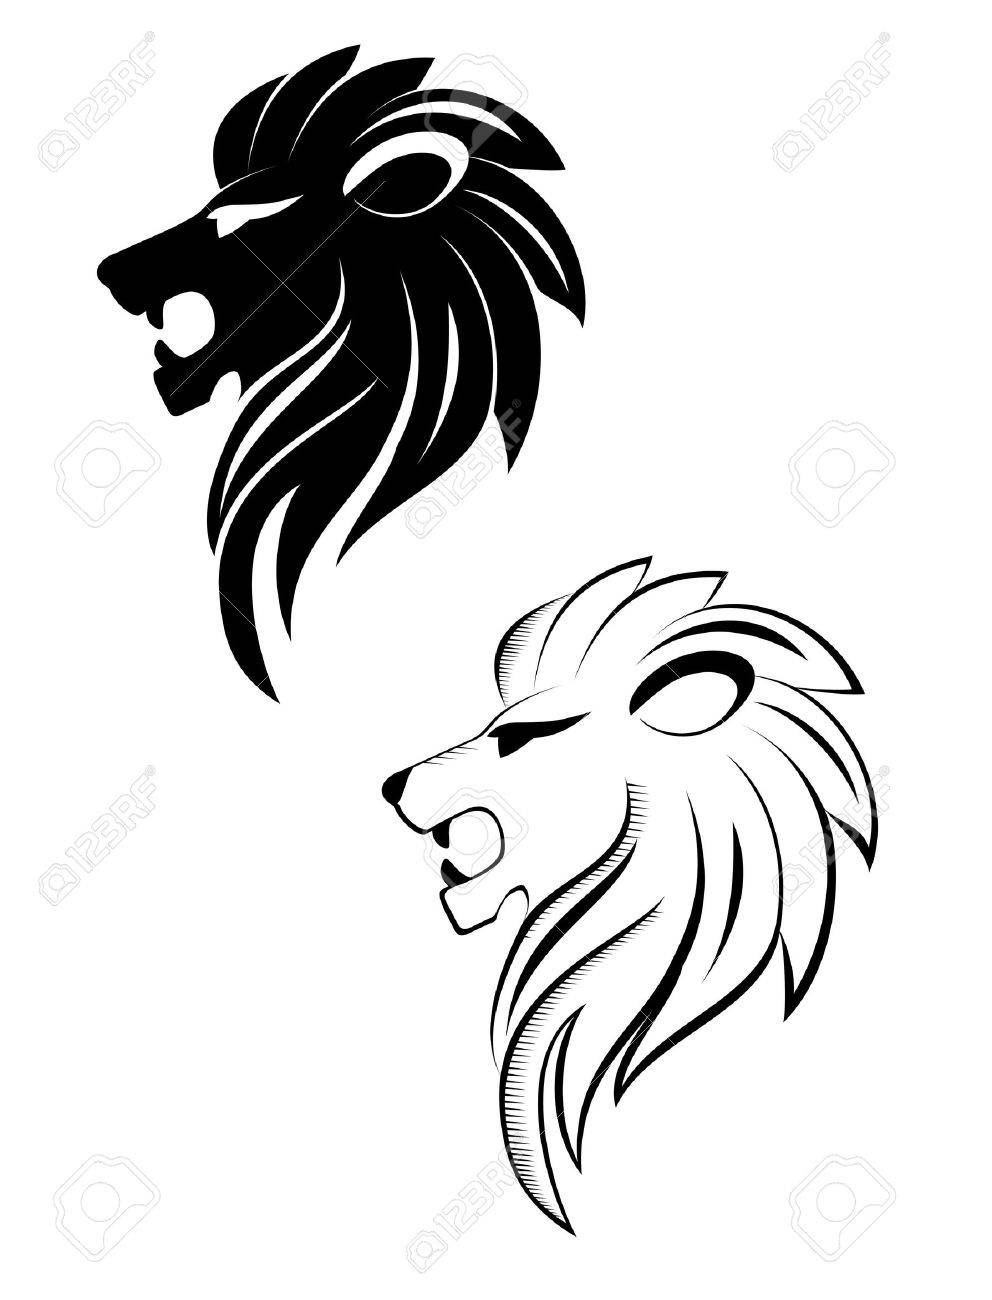 Isolated lion head as a symbol or sign Stock Vector - 8805148